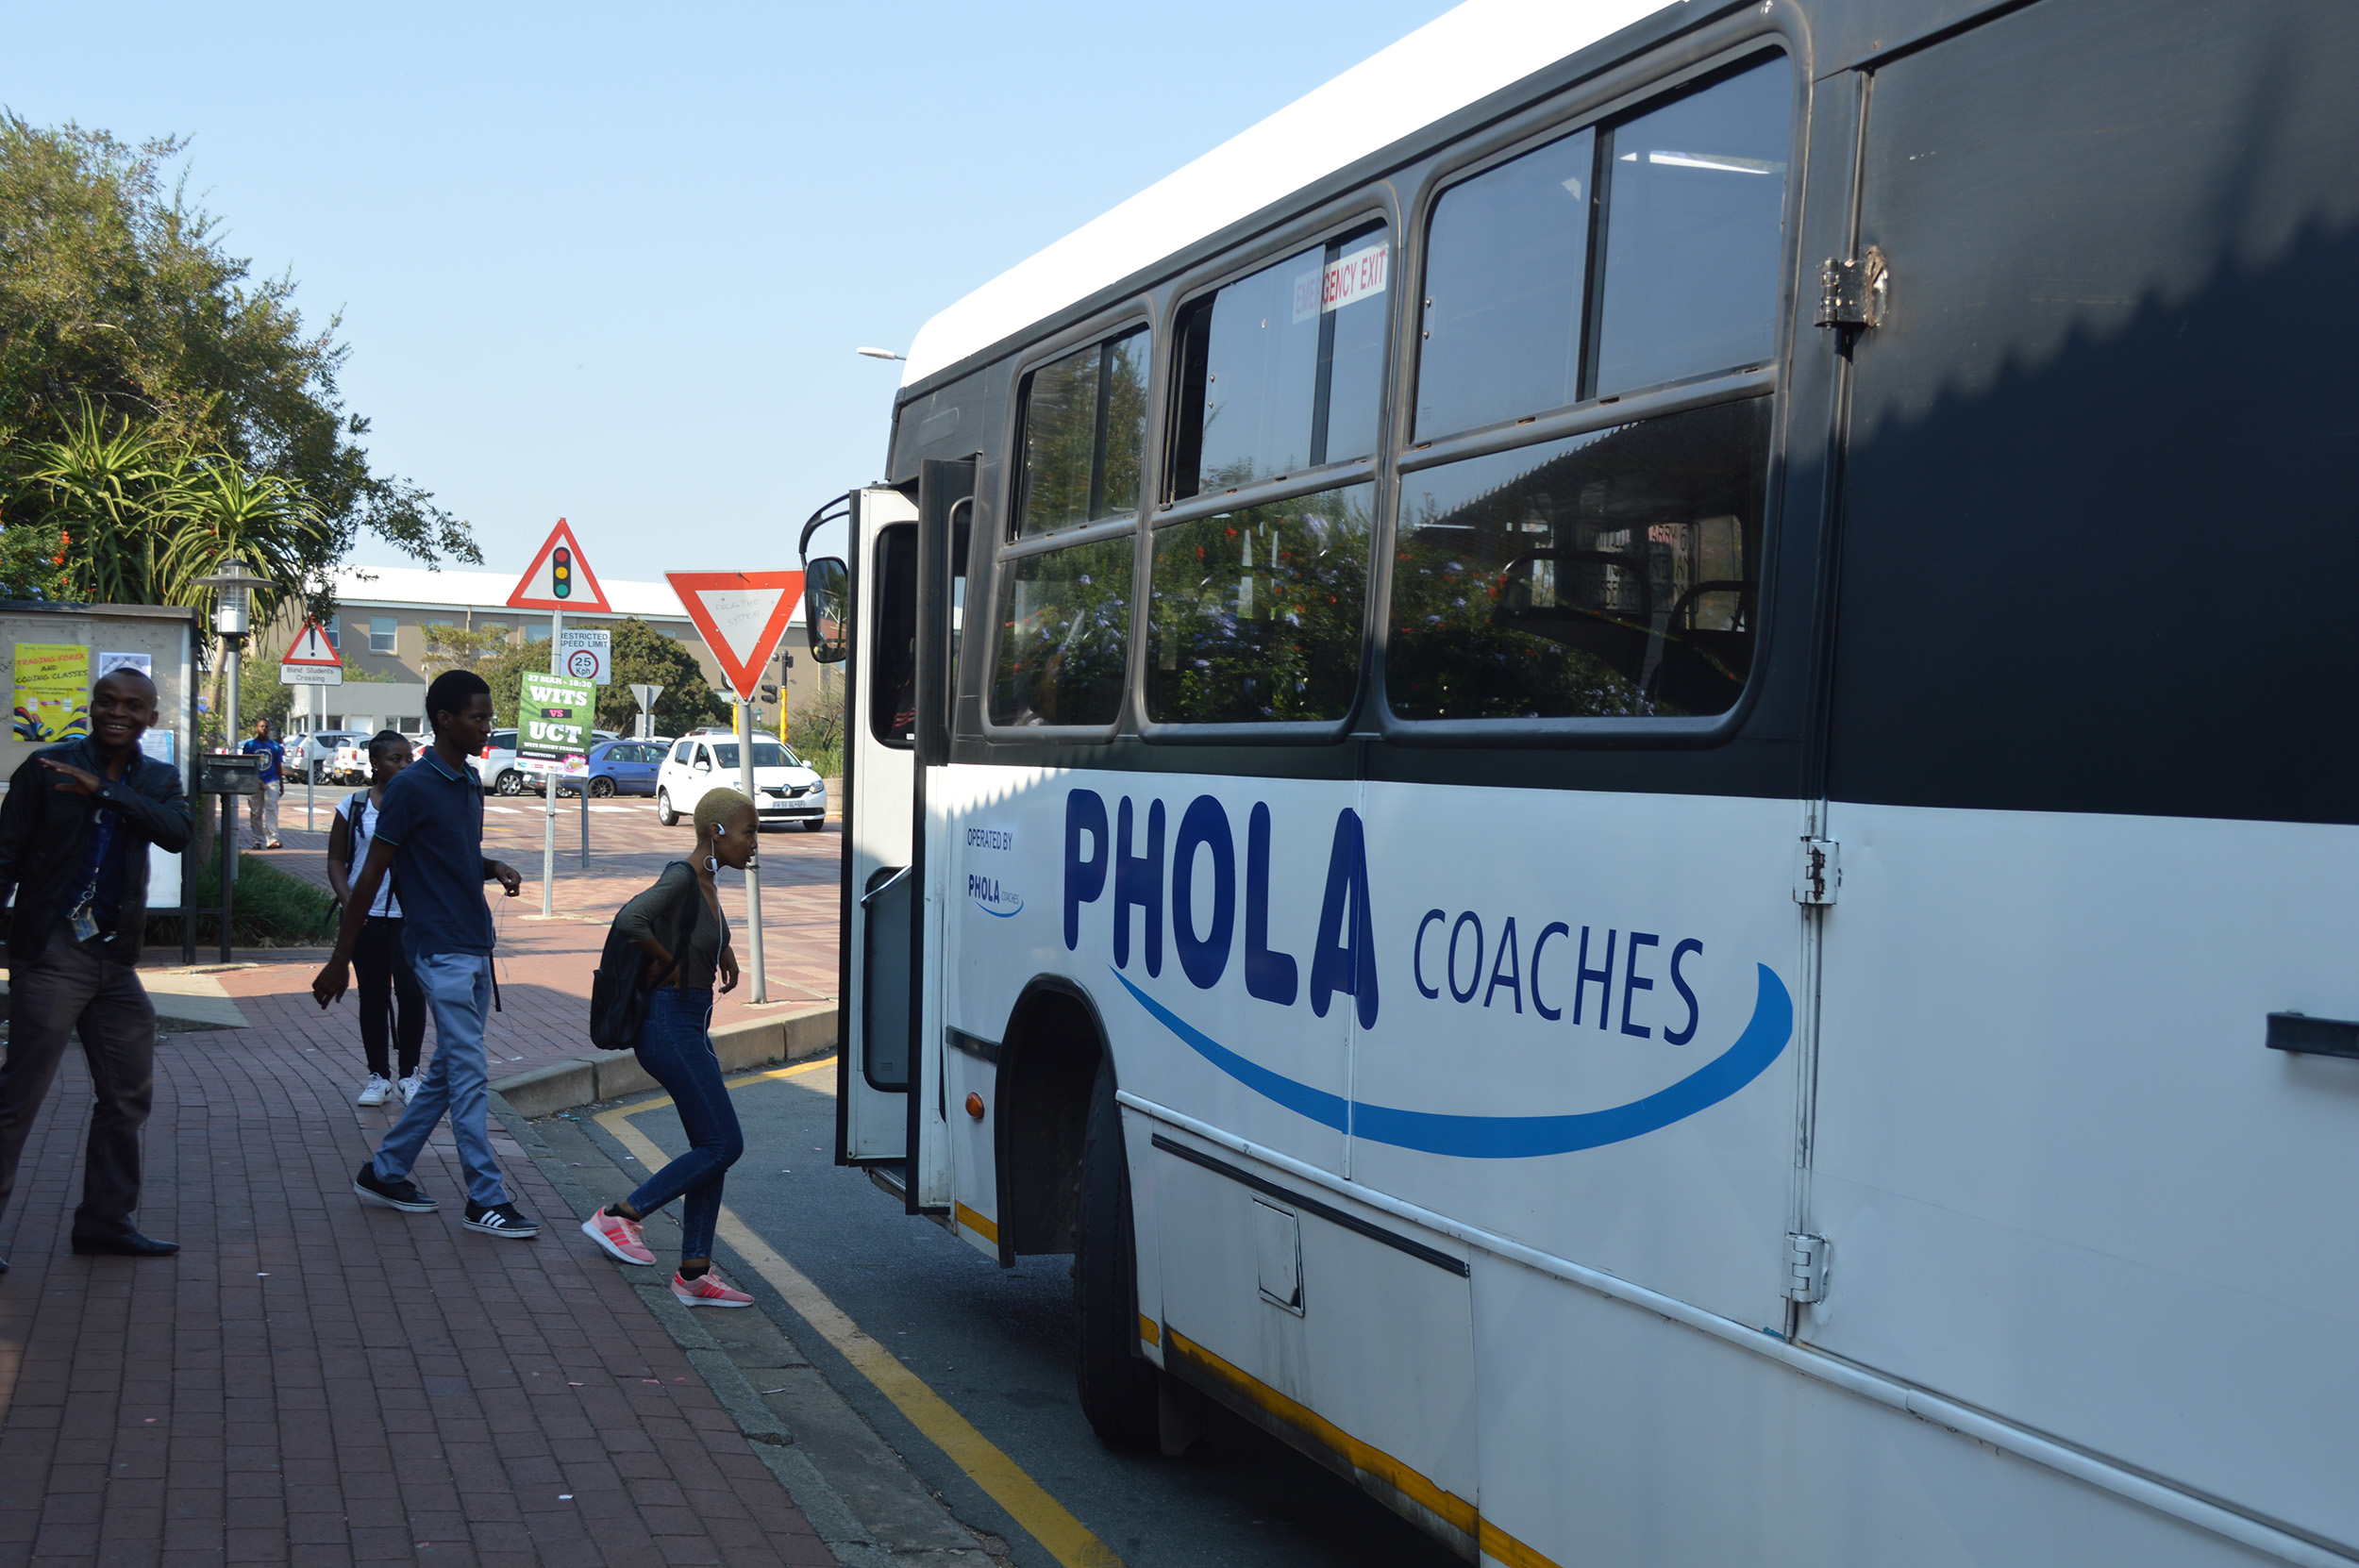 Phola Coaches workers challenge dismissal